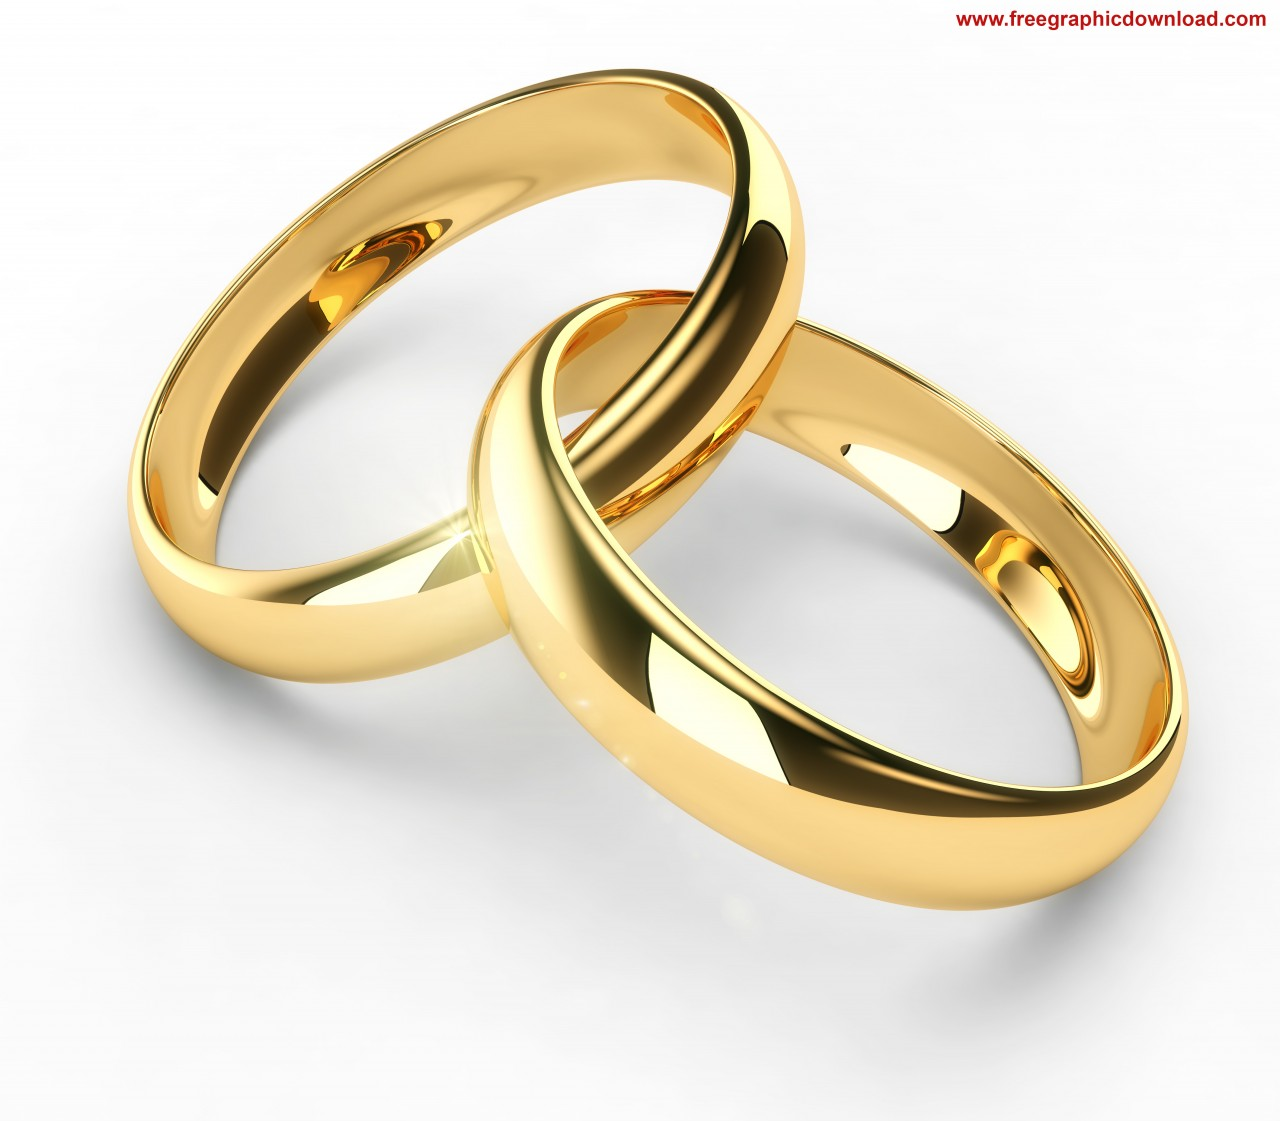 Captivating Pictures Of Wedding Rings 1